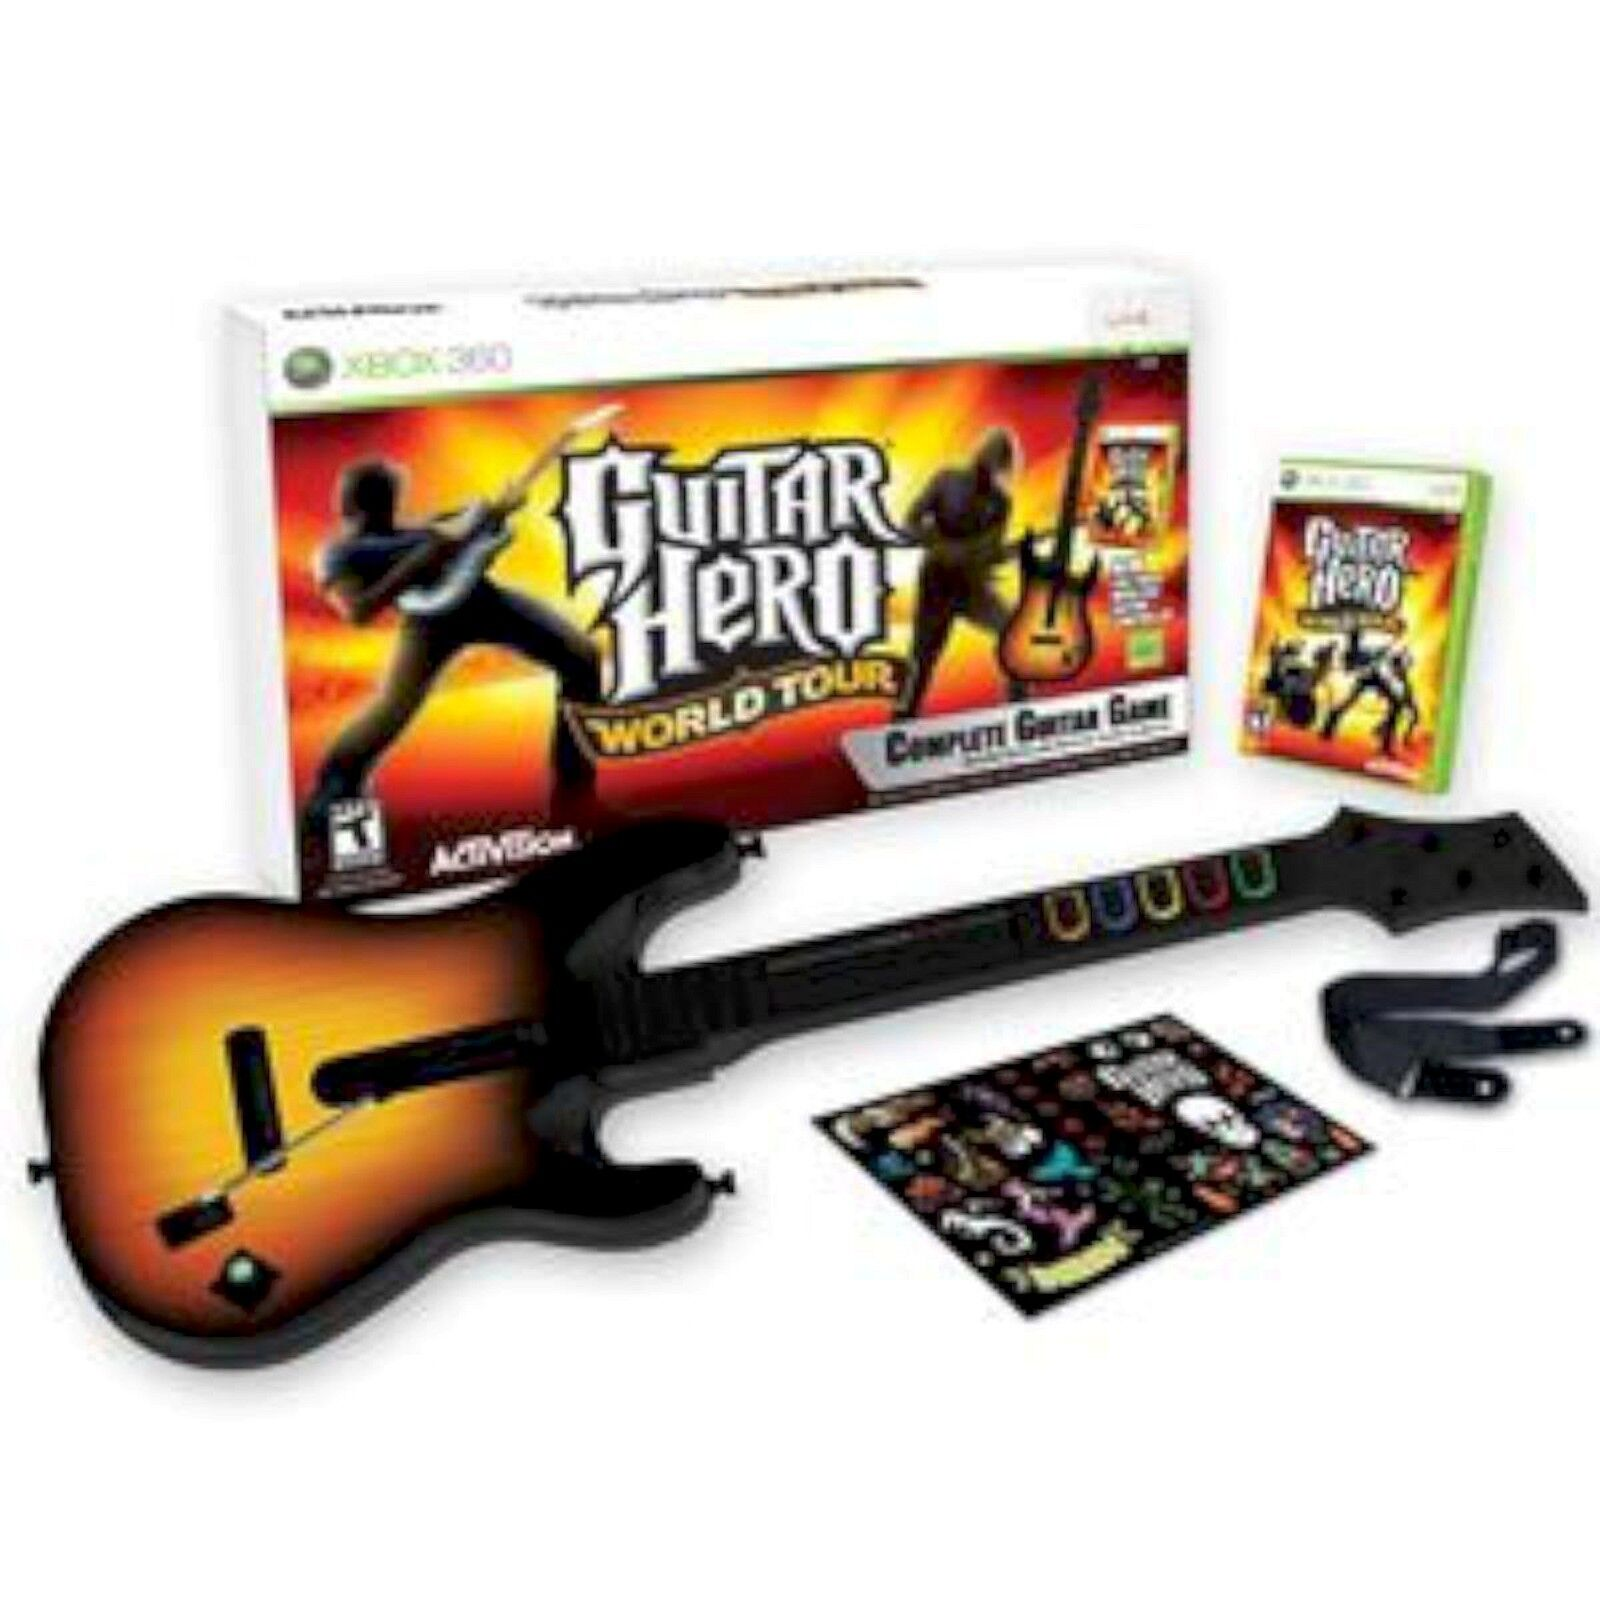 XBox 360 GUITAR HERO WORLD TOUR Guitar Kit Bundle Set w ...